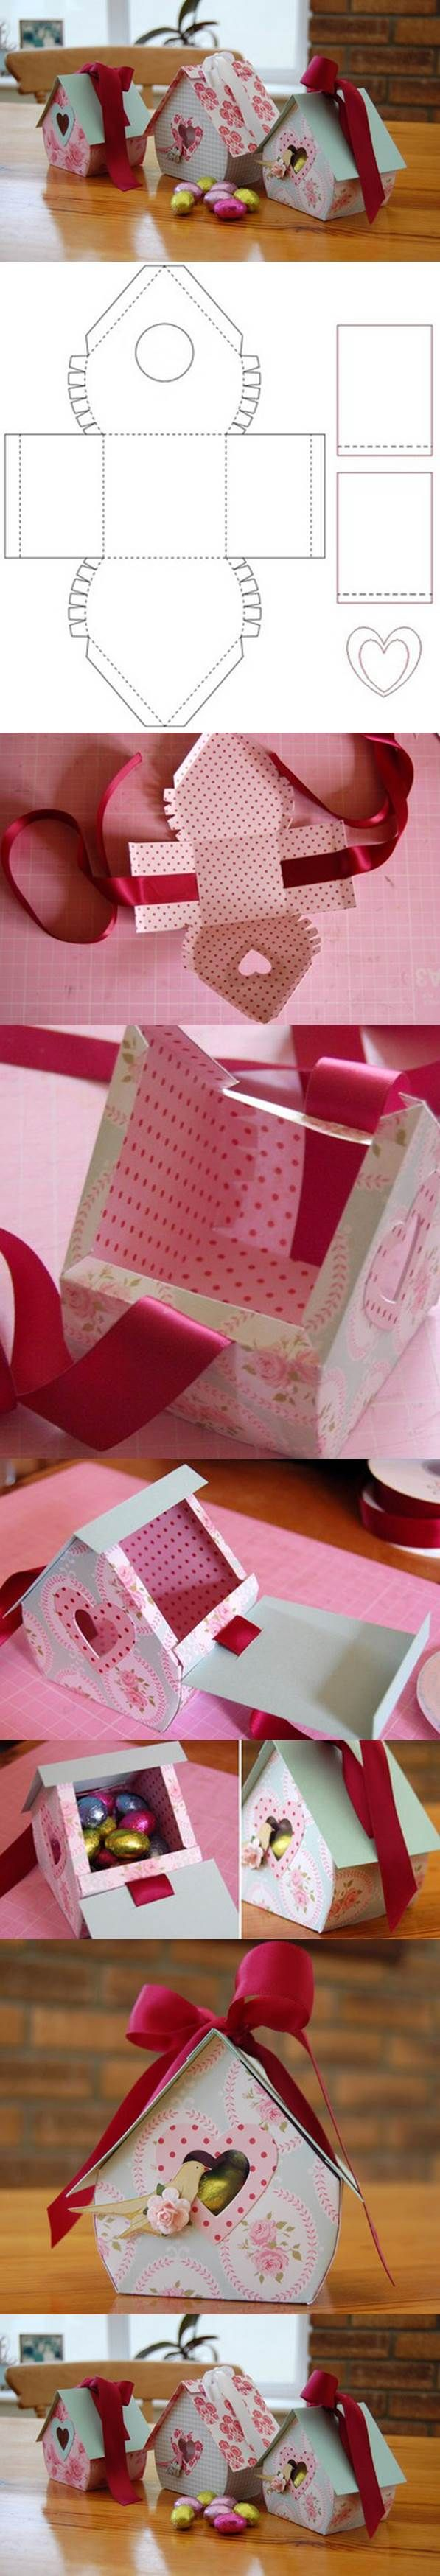 DIY bird house gift box template: perfect for homemade candy, small party/shower favors & more